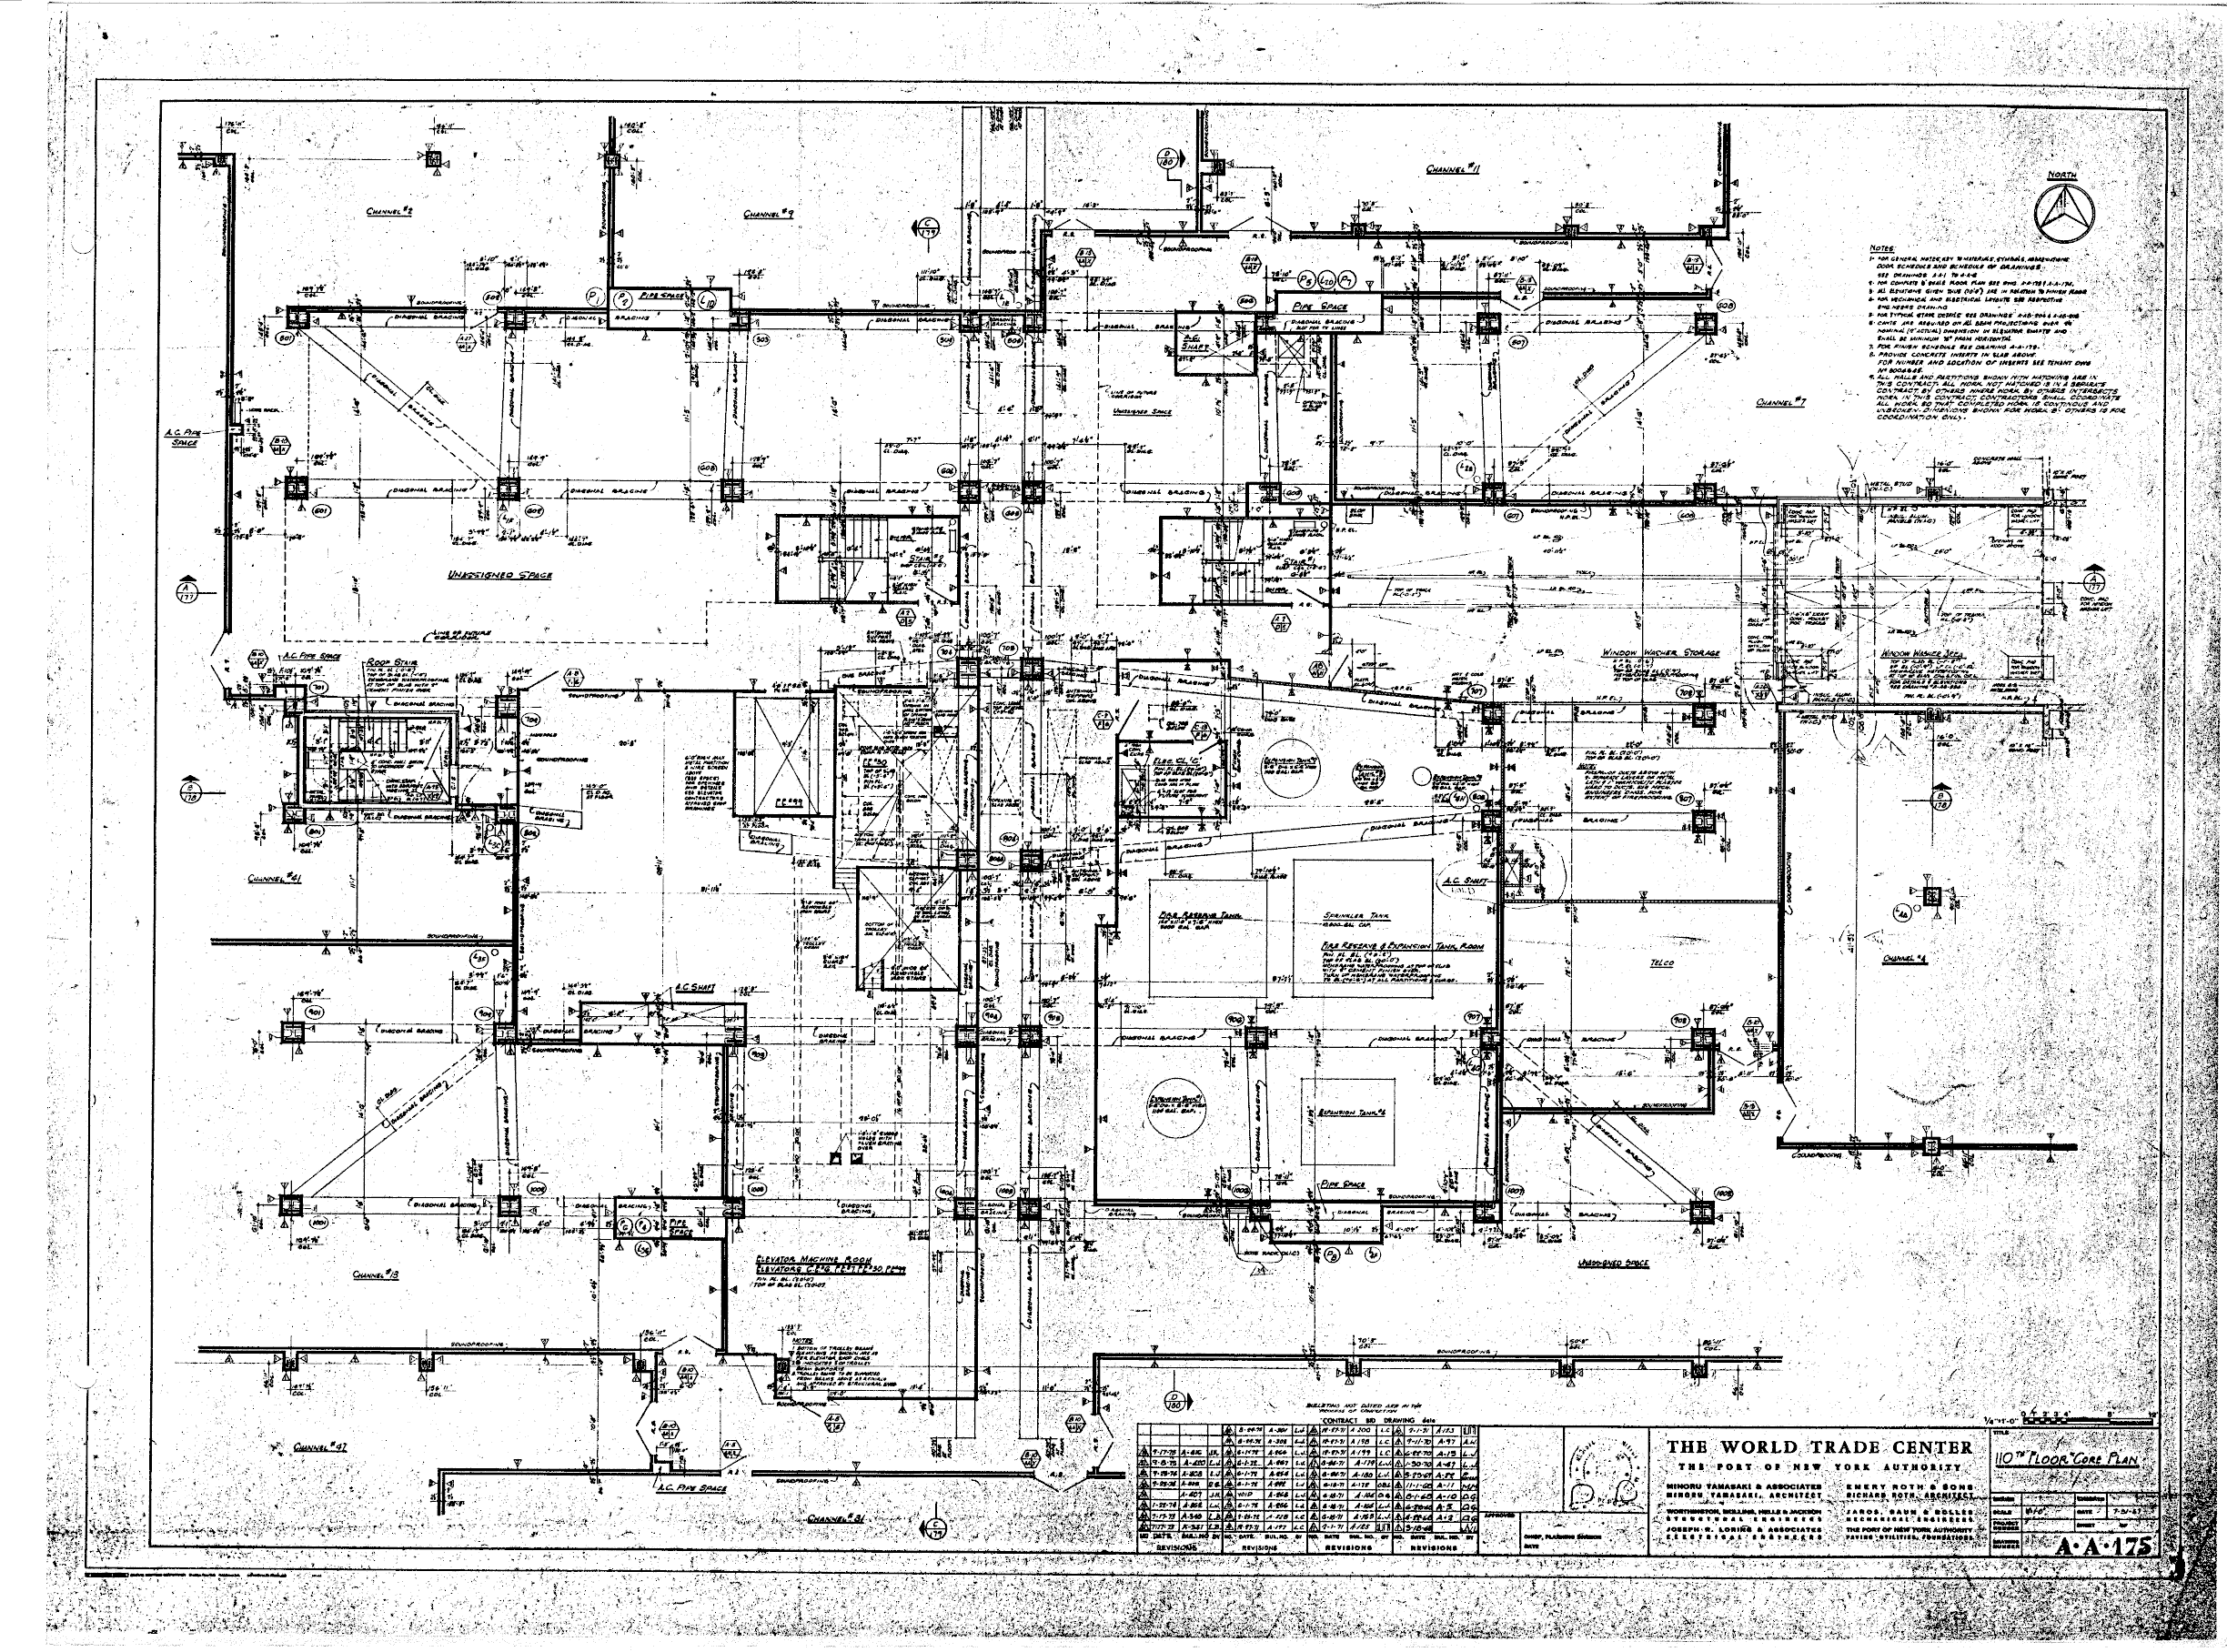 North tower blueprints table of world trade center tower a architectural drawings malvernweather